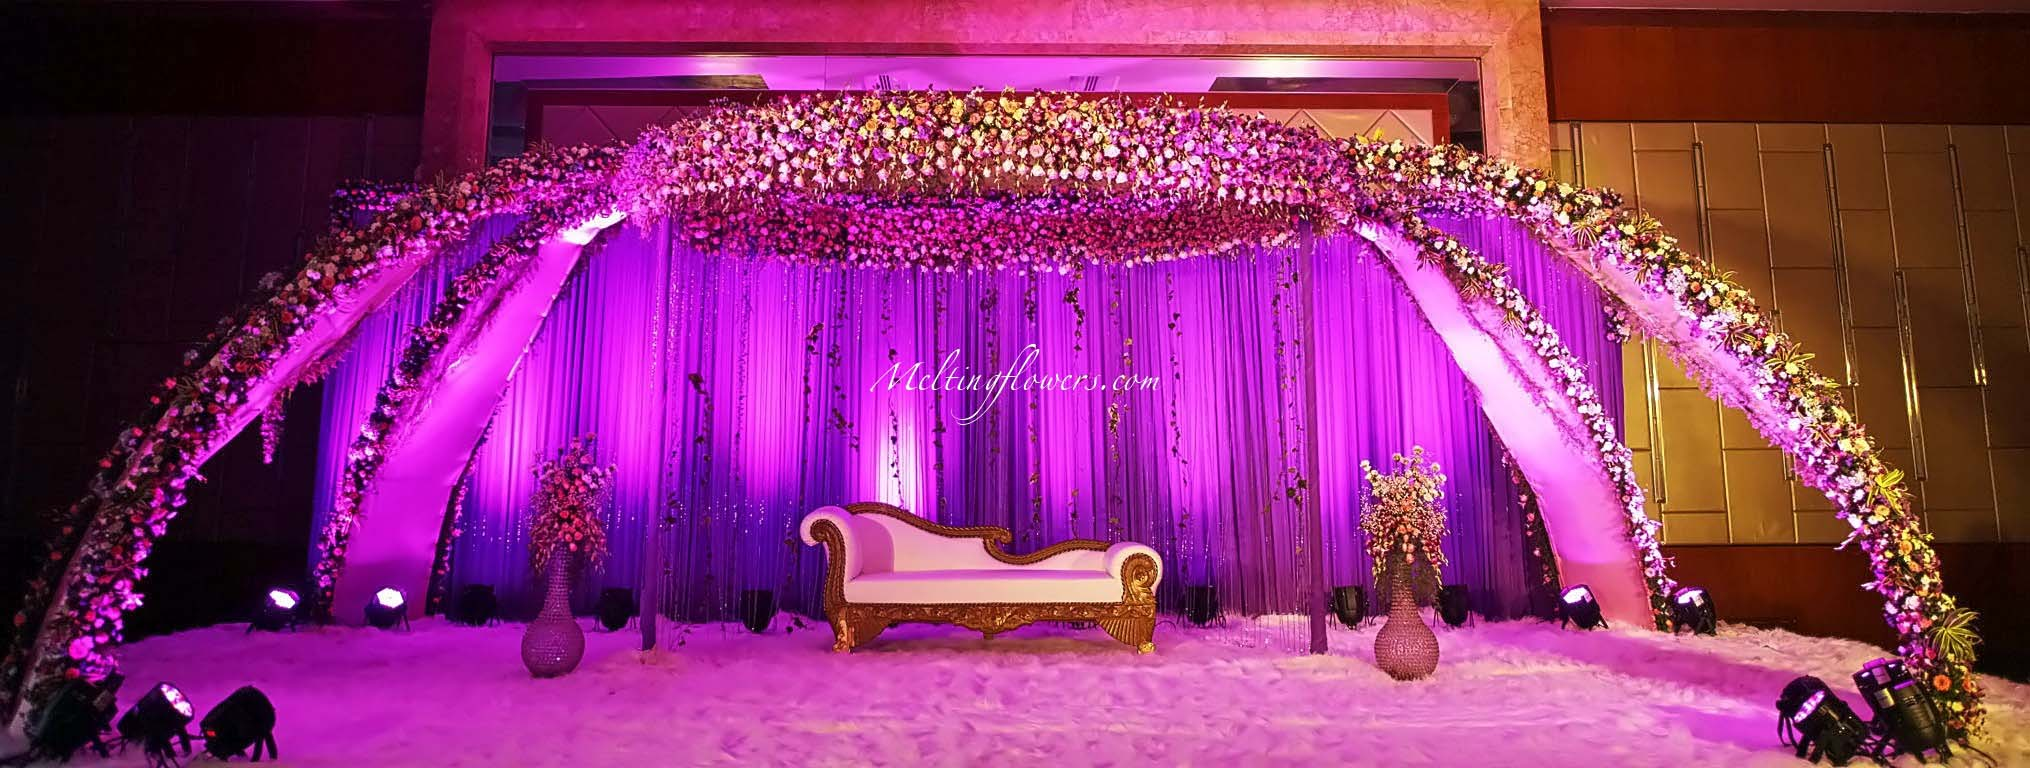 Wedding backdrops backdrop decorations melting flowers for Backdrops decoration